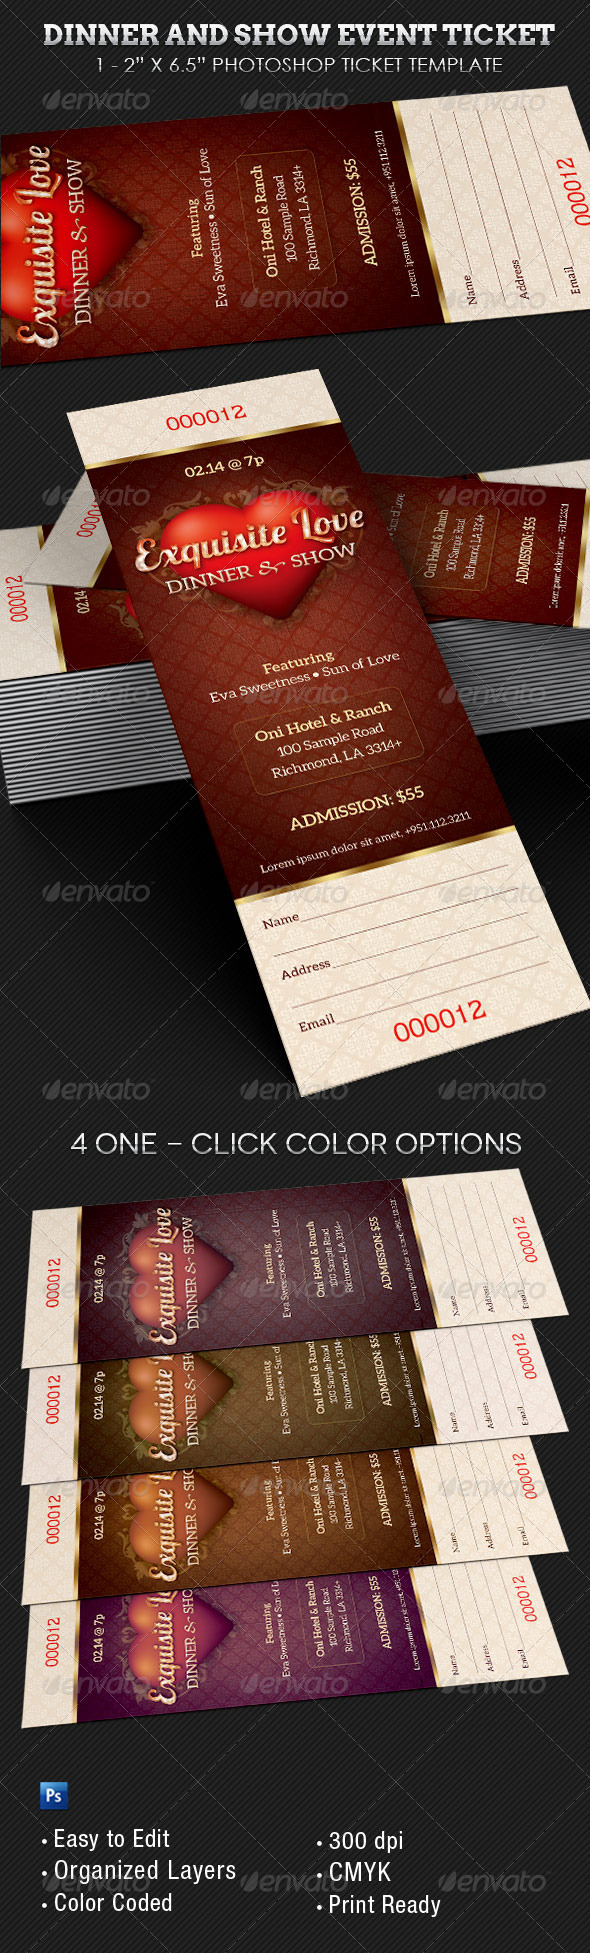 Dinner and Dance Event Ticket Template - Miscellaneous Print Templates